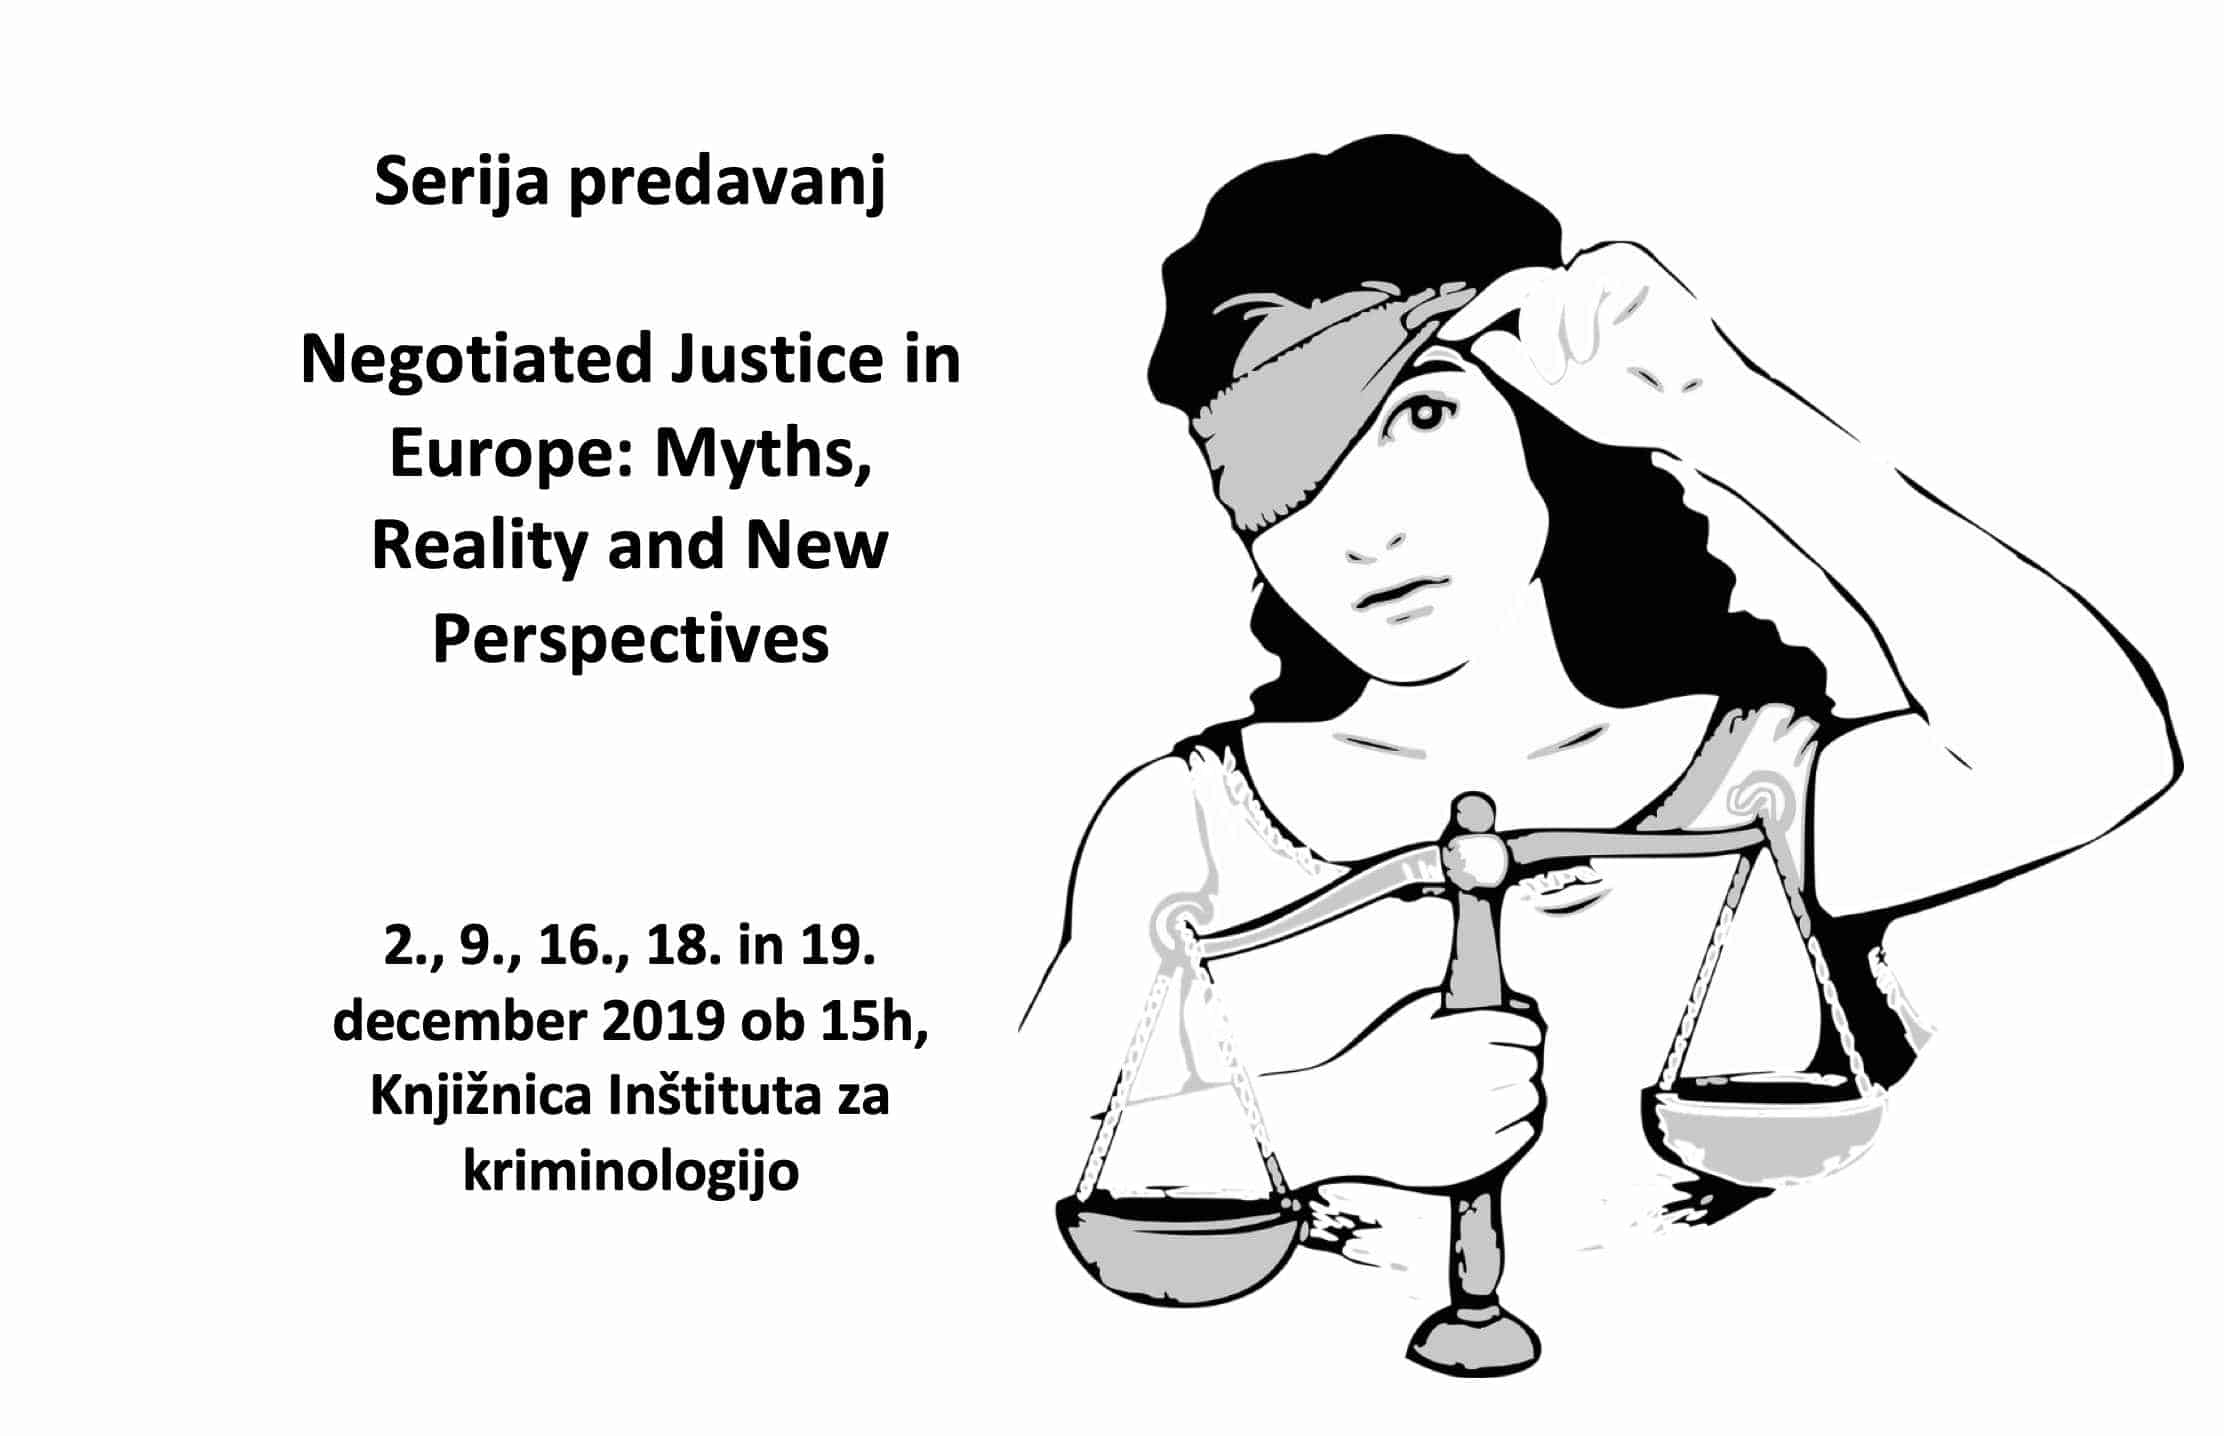 Negotiated Justice in Europe: Myths, Reality and New Perspectives